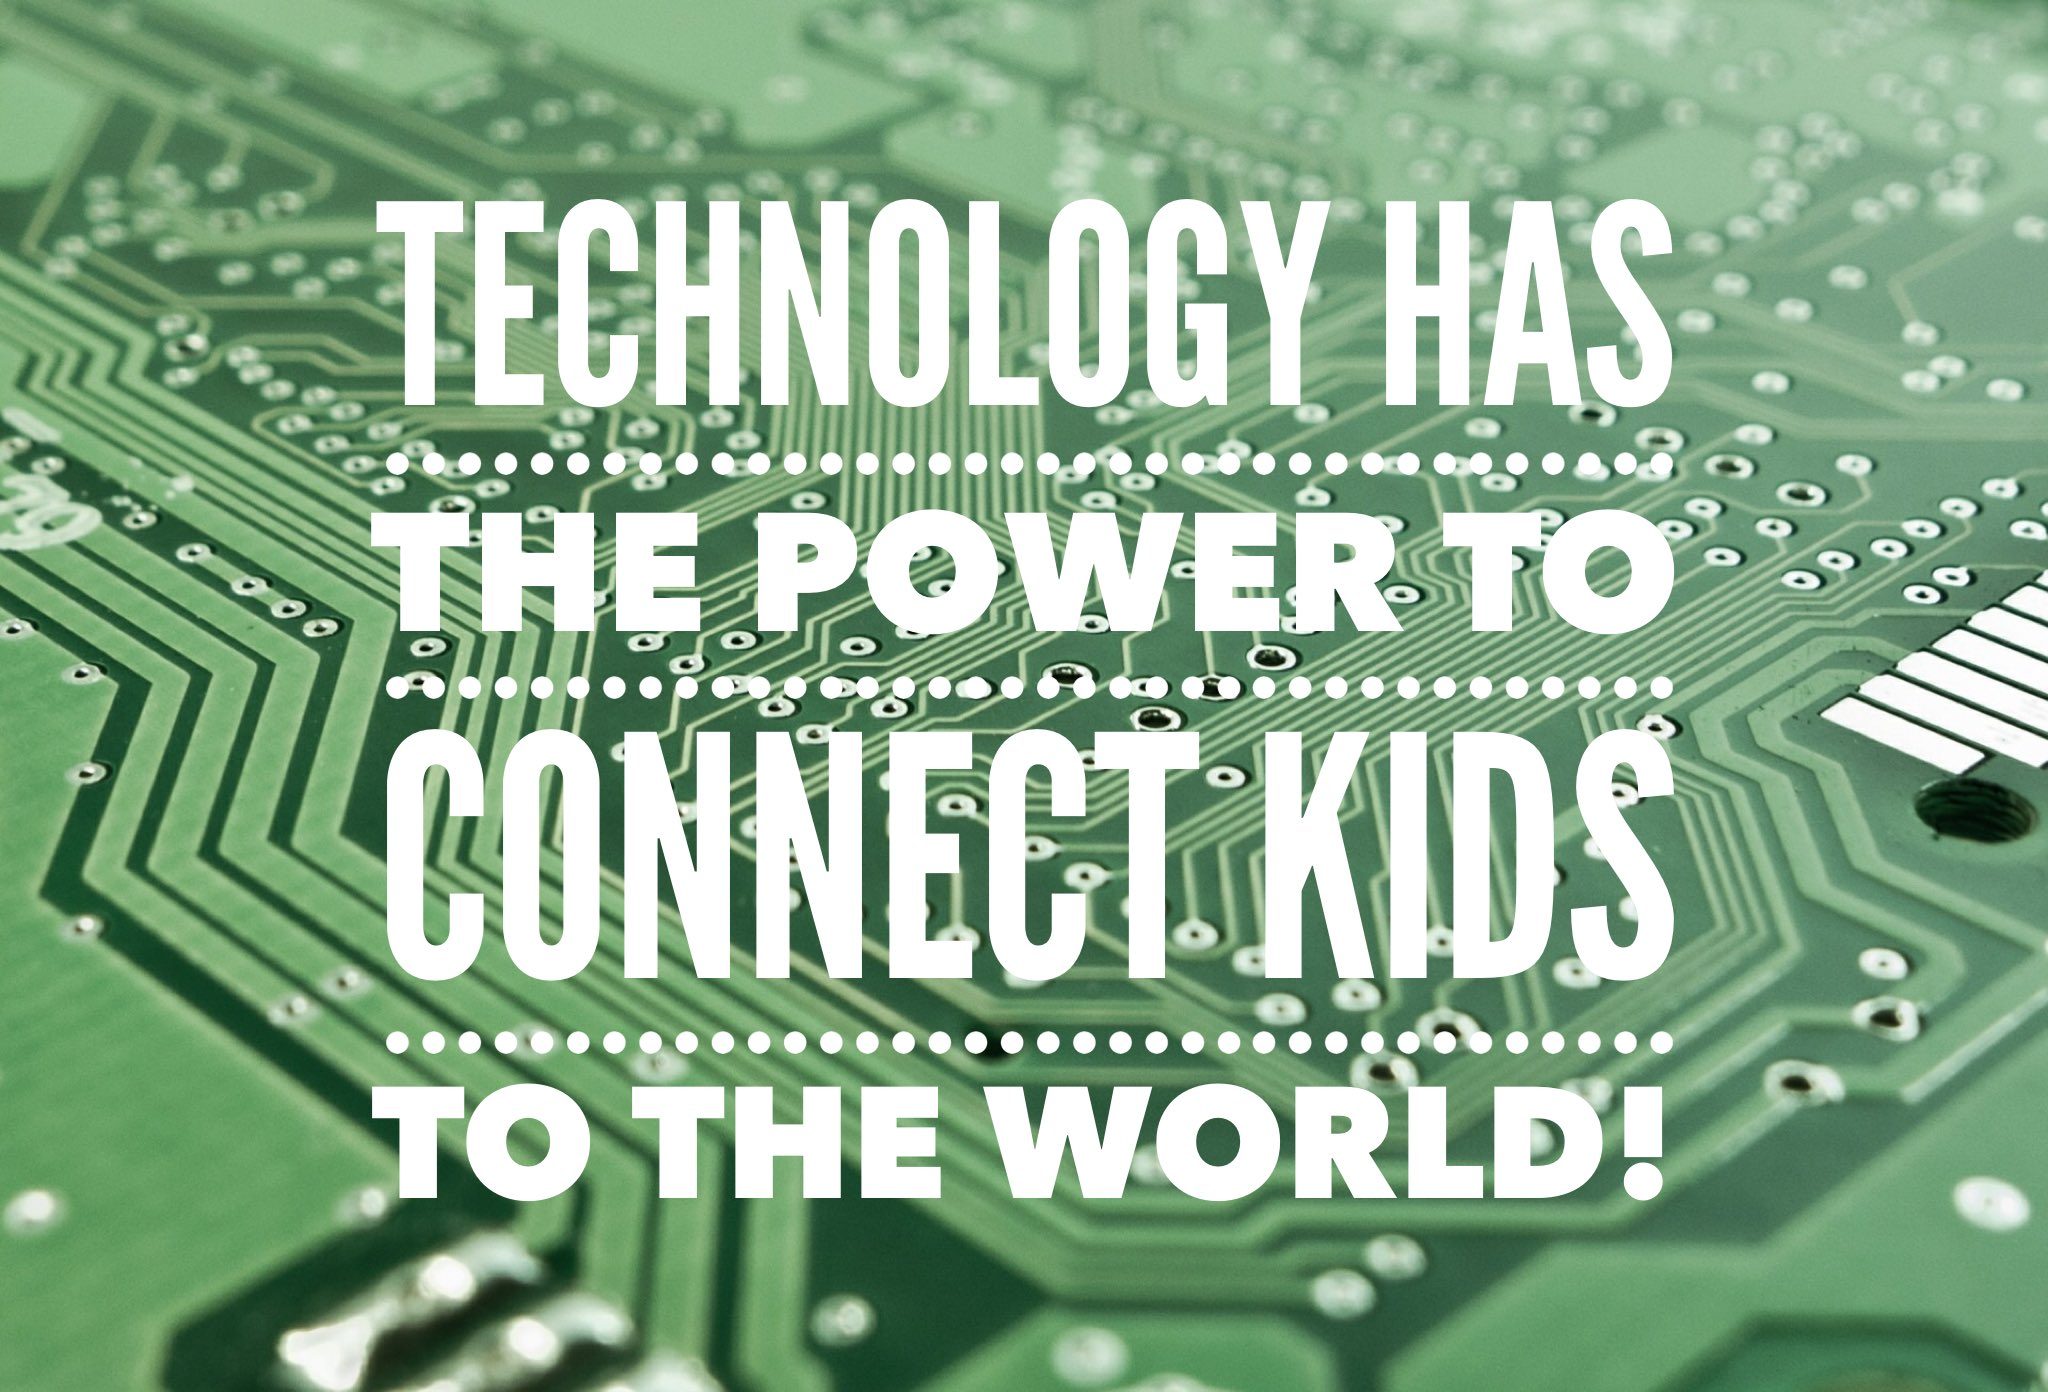 Tech isn't an expensive wksht or substitution for what you're already doing! It has power to connect in amazing ways #witcon17 #ditchbook https://t.co/pJRMSHecv5